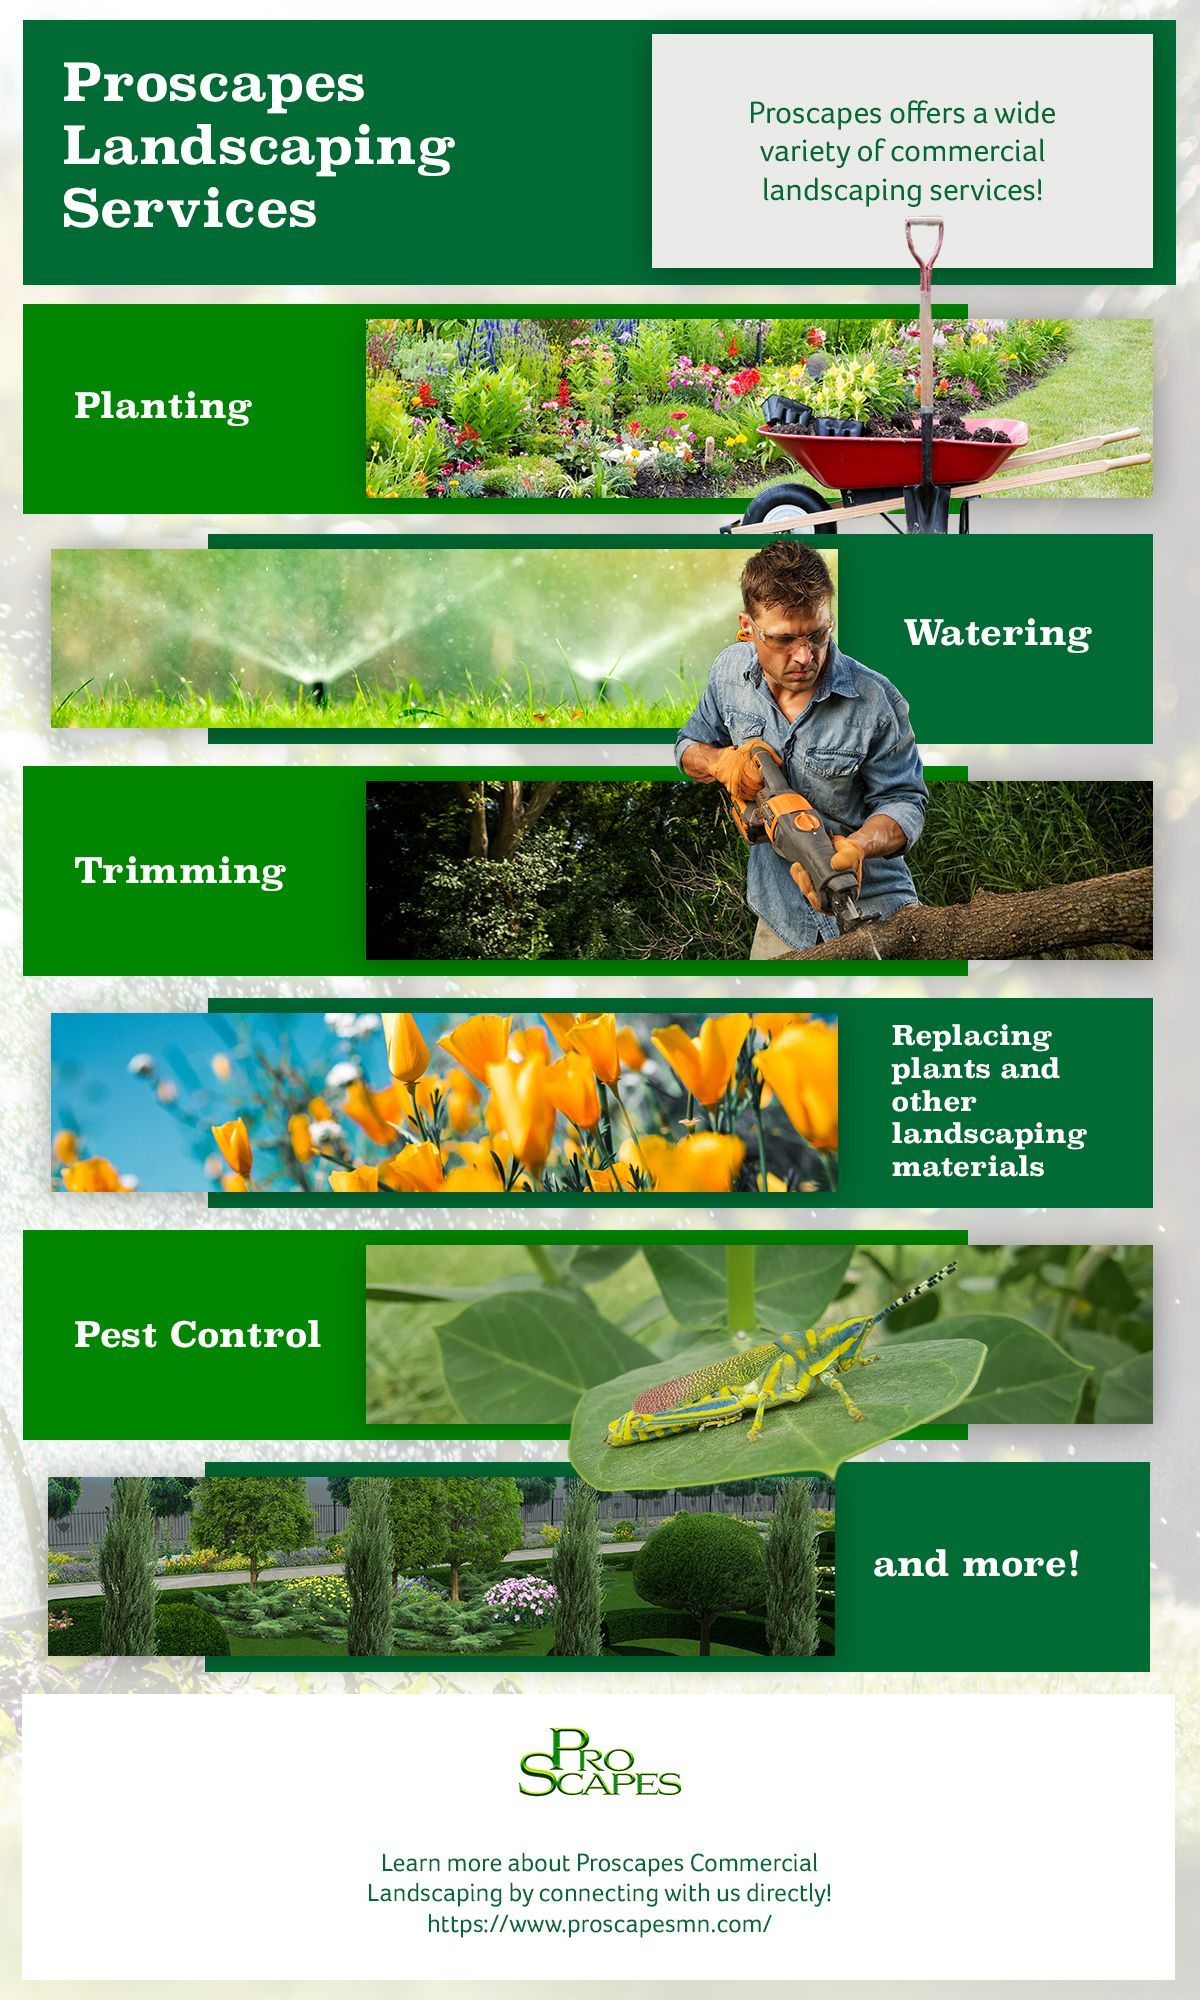 Proscapes Landscaping Services